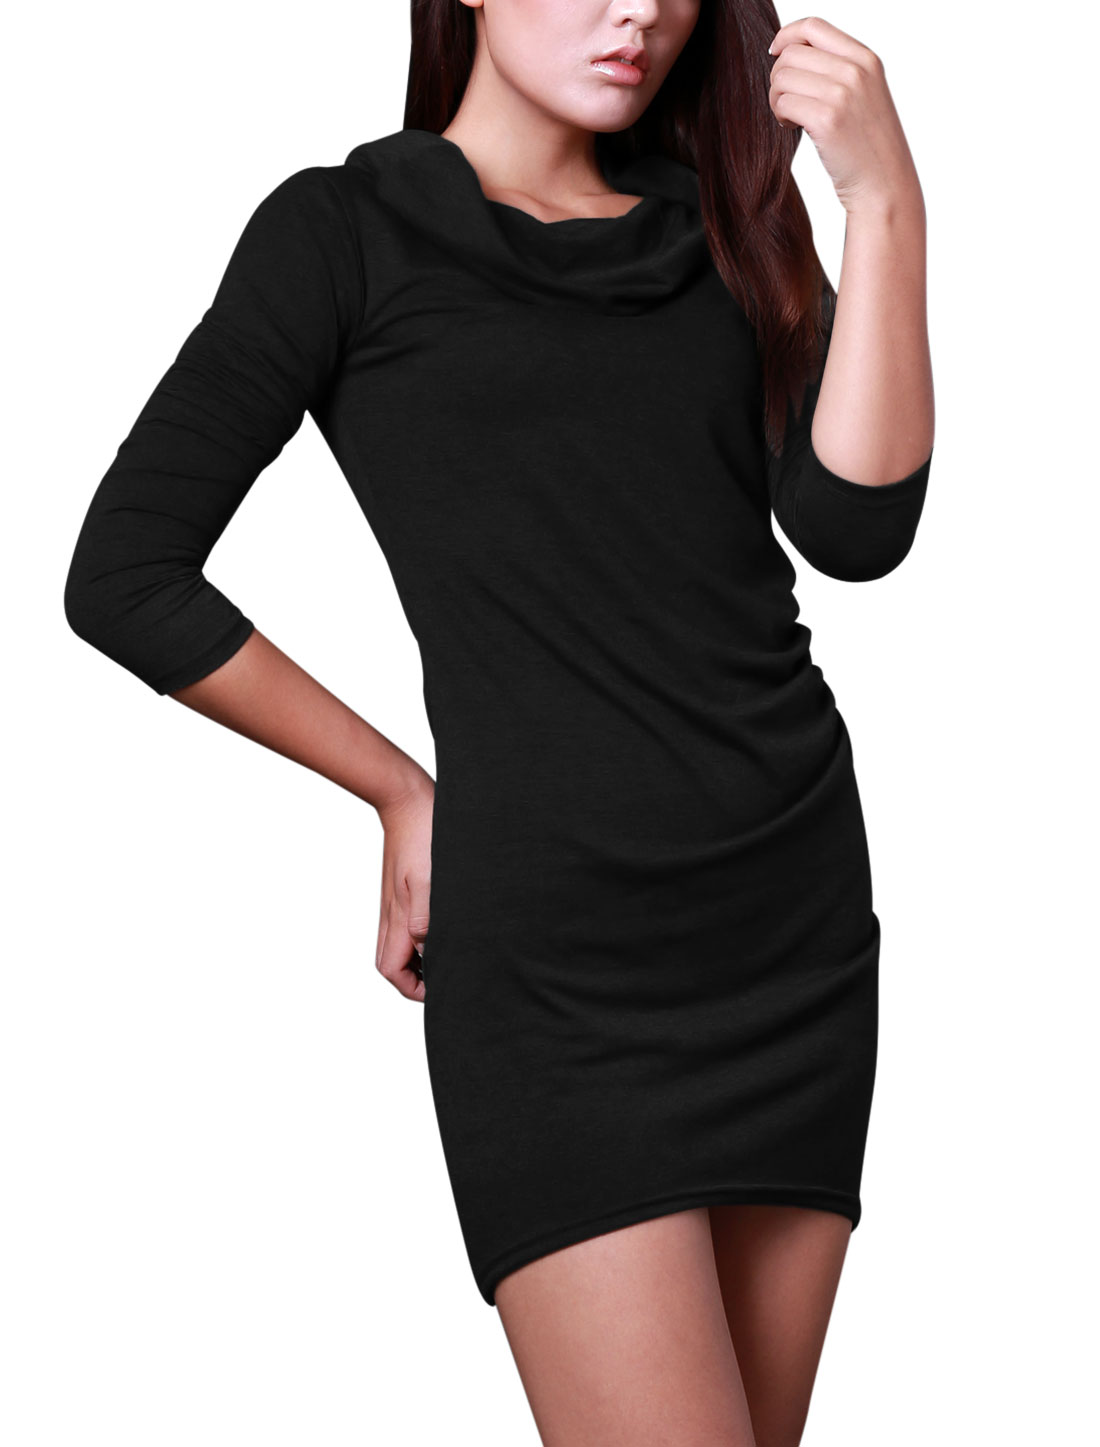 Lady Cowl Neck Ruched Detail Slim Fit Stretch Dress Black S